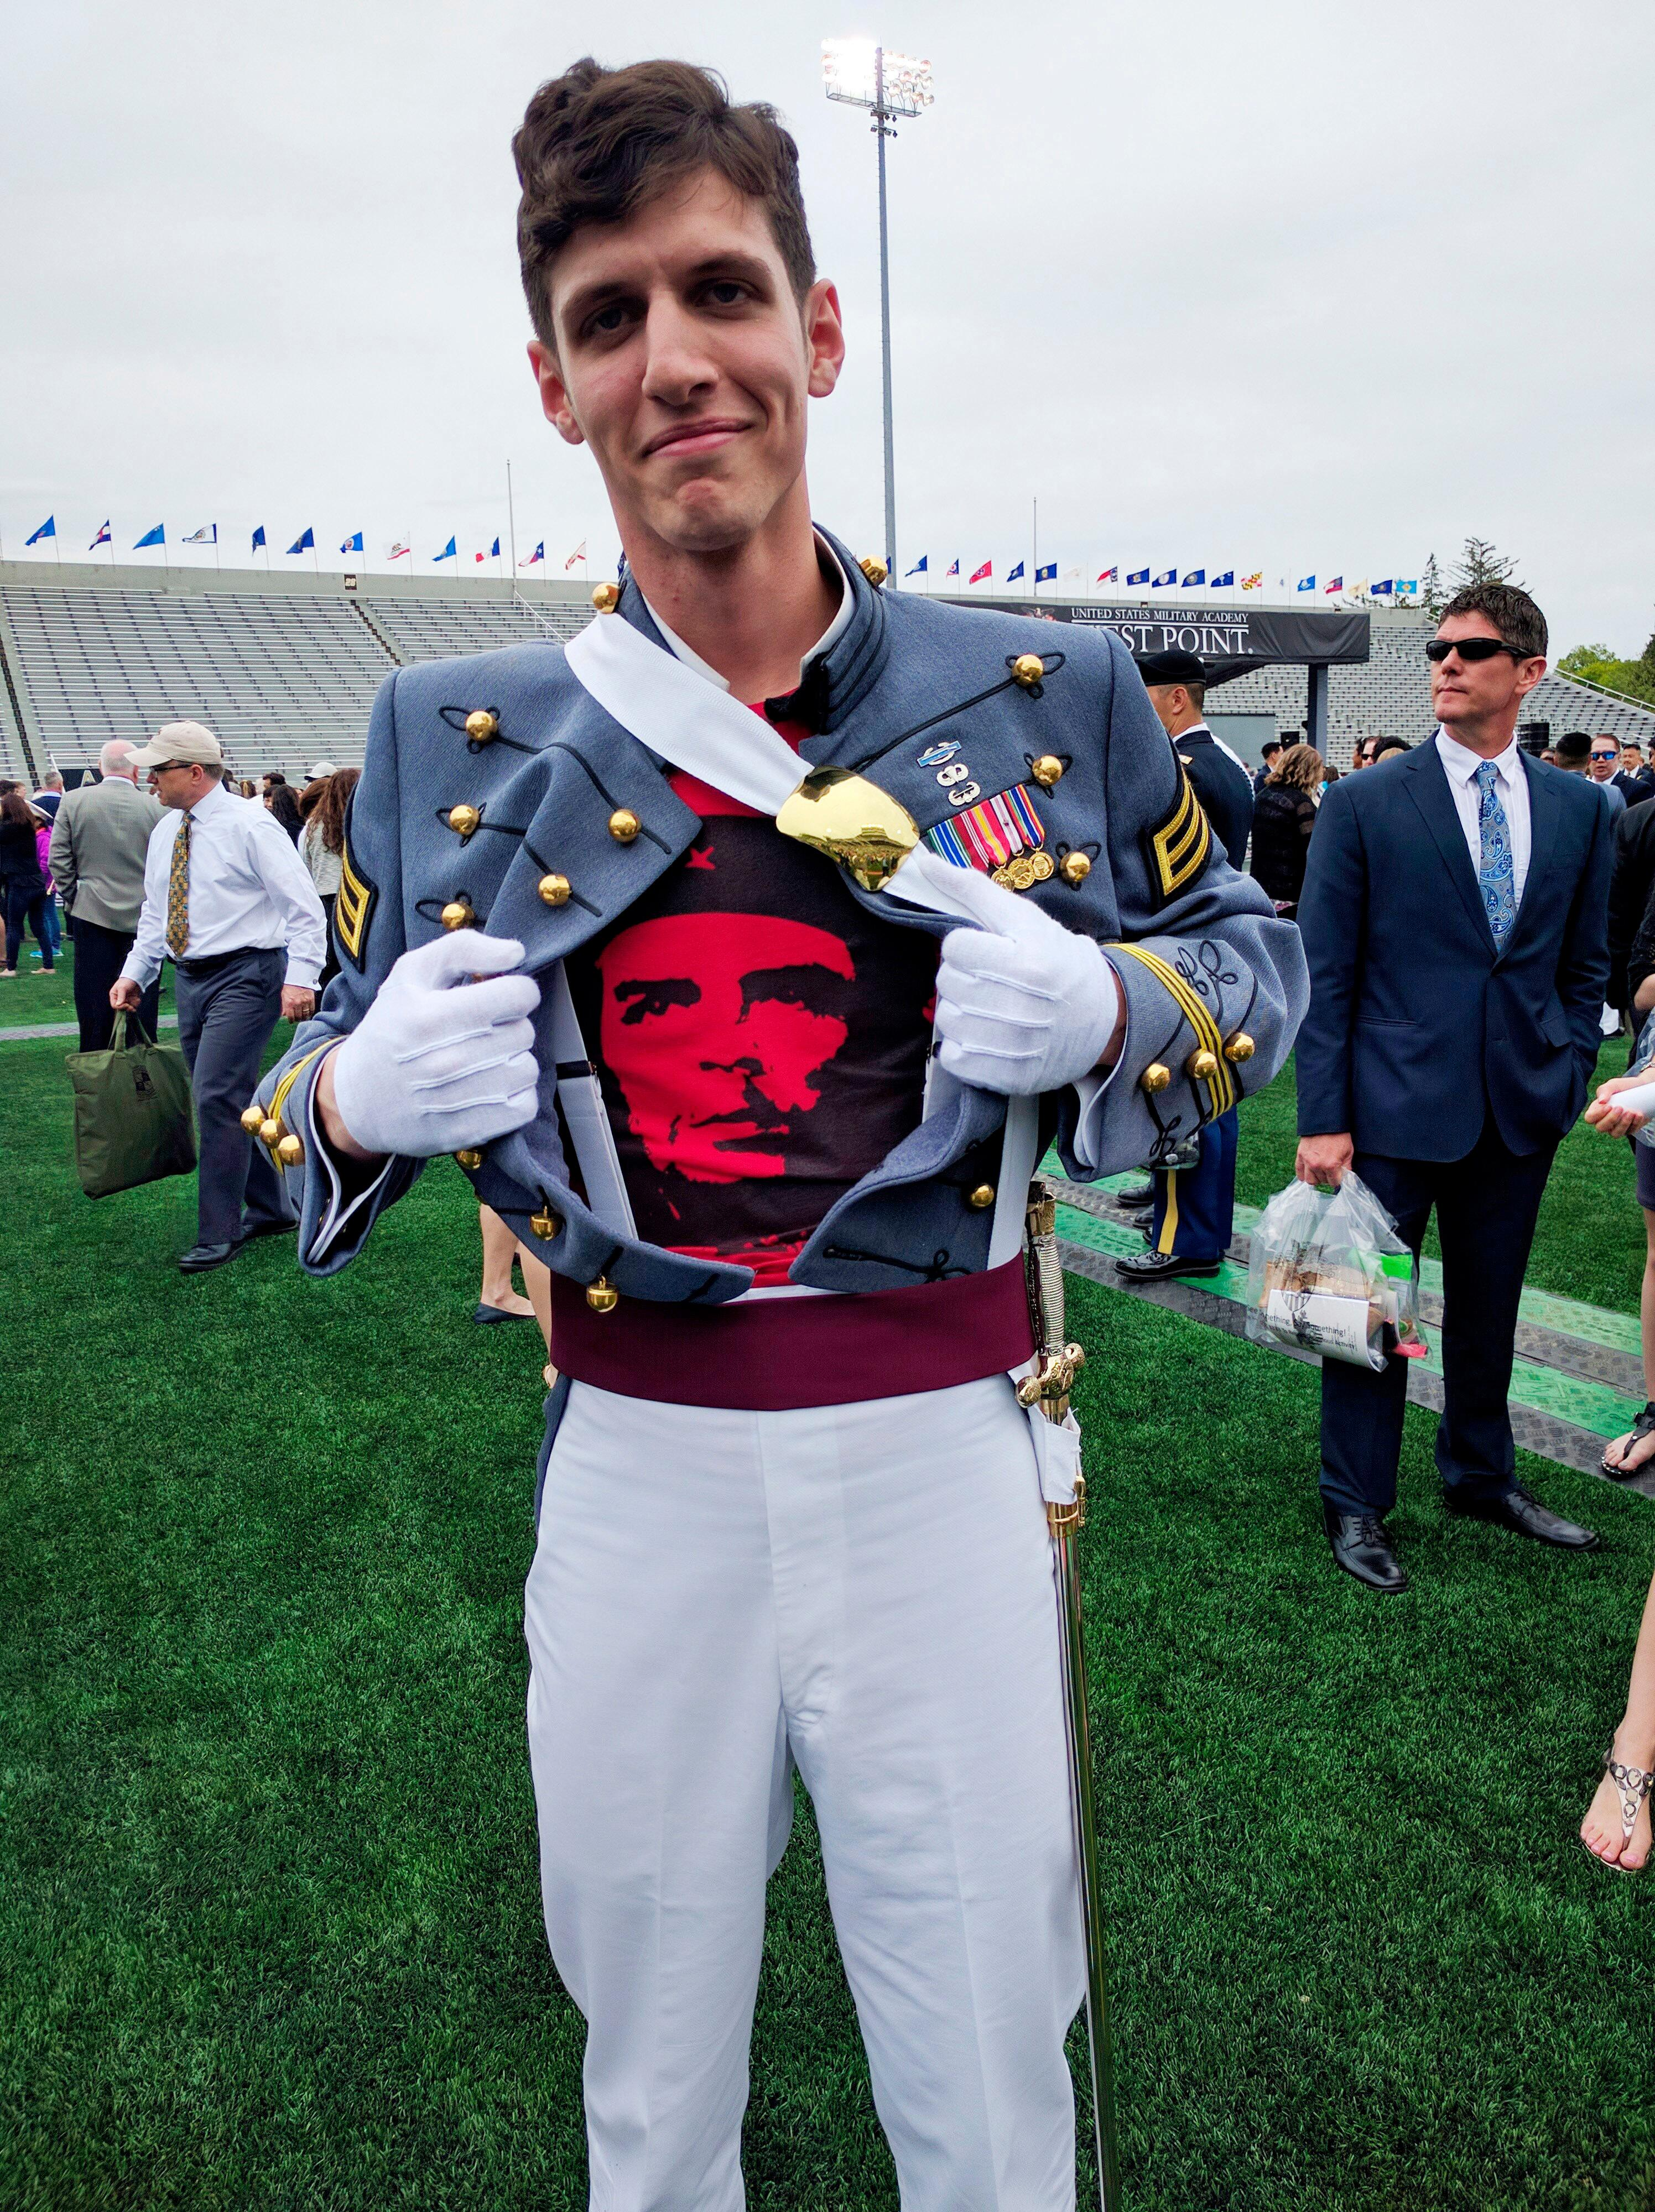 In this May 2016 photo provided by Spenser Rapone, Rapone displays a shirt bearing the image of socialist icon Che Guevara under his uniform, after graduating from the United States Military Academy. (Courtesy of Spenser Rapone via AP)